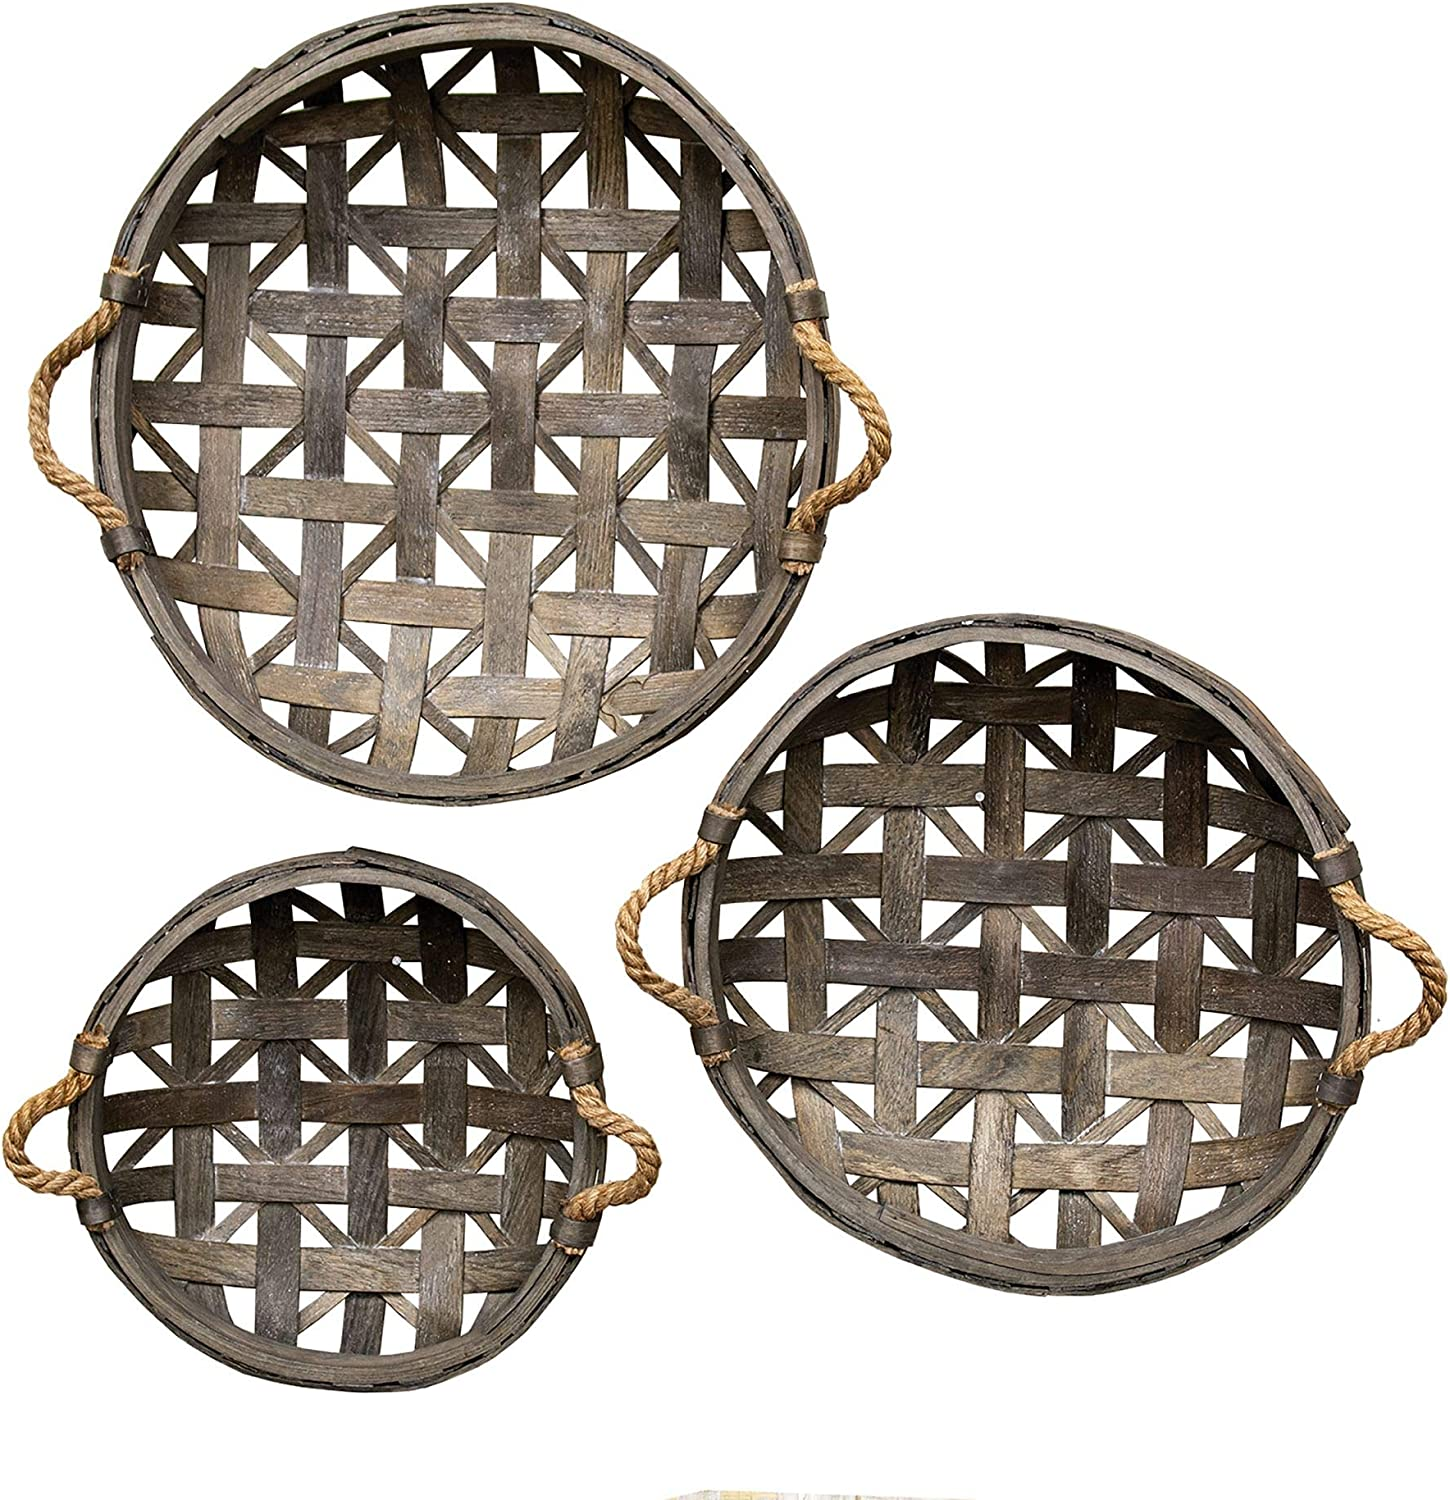 CWI Gifts Natural Round Tobacco Baskets w/Jute Handles 3/Set, Multi